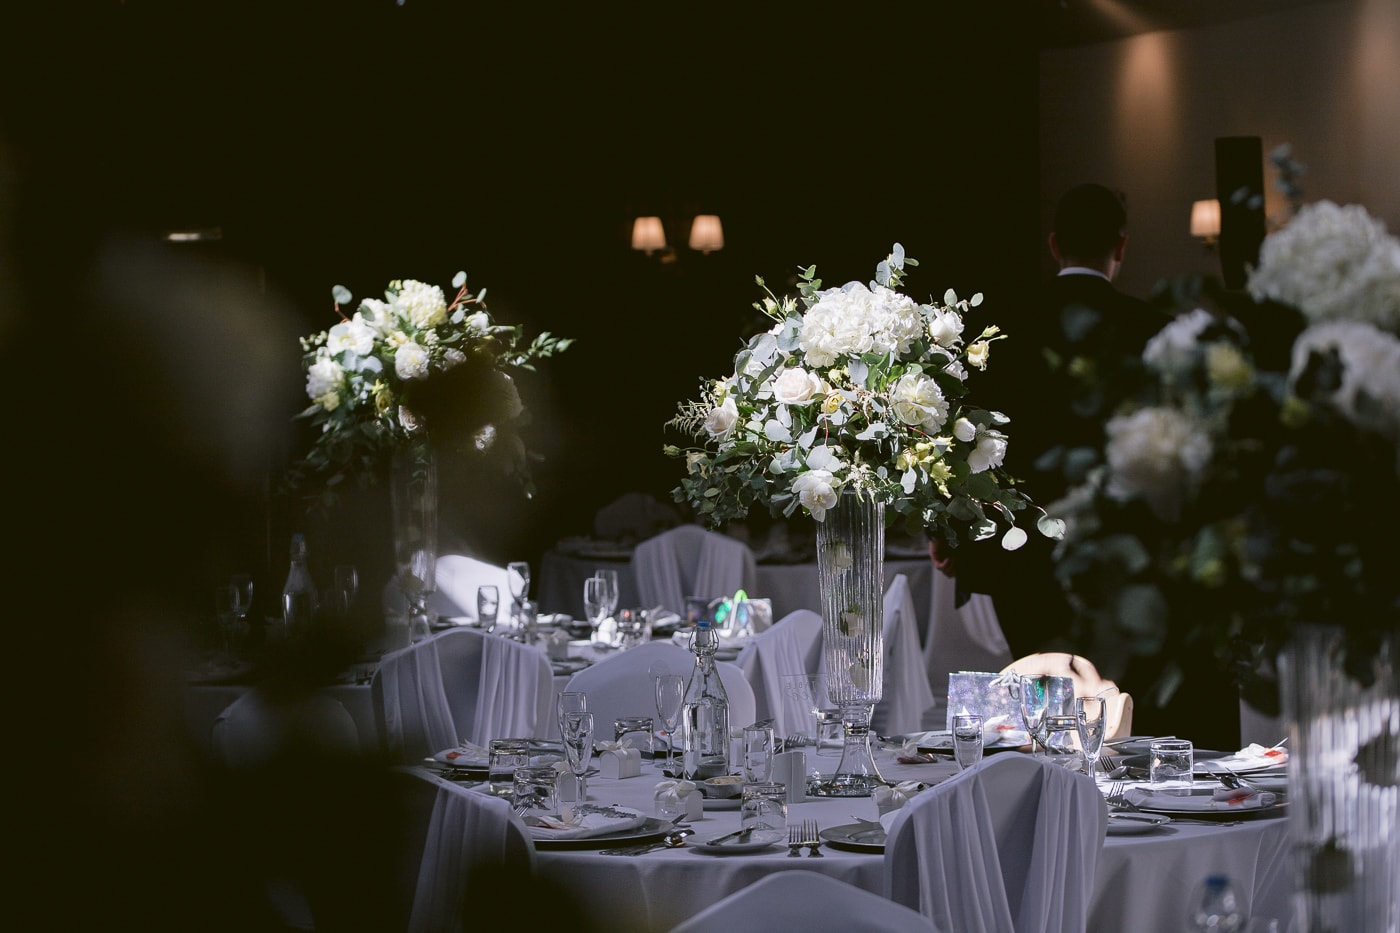 Decorative Flowers on Evening Reception Table Waiting For Guests